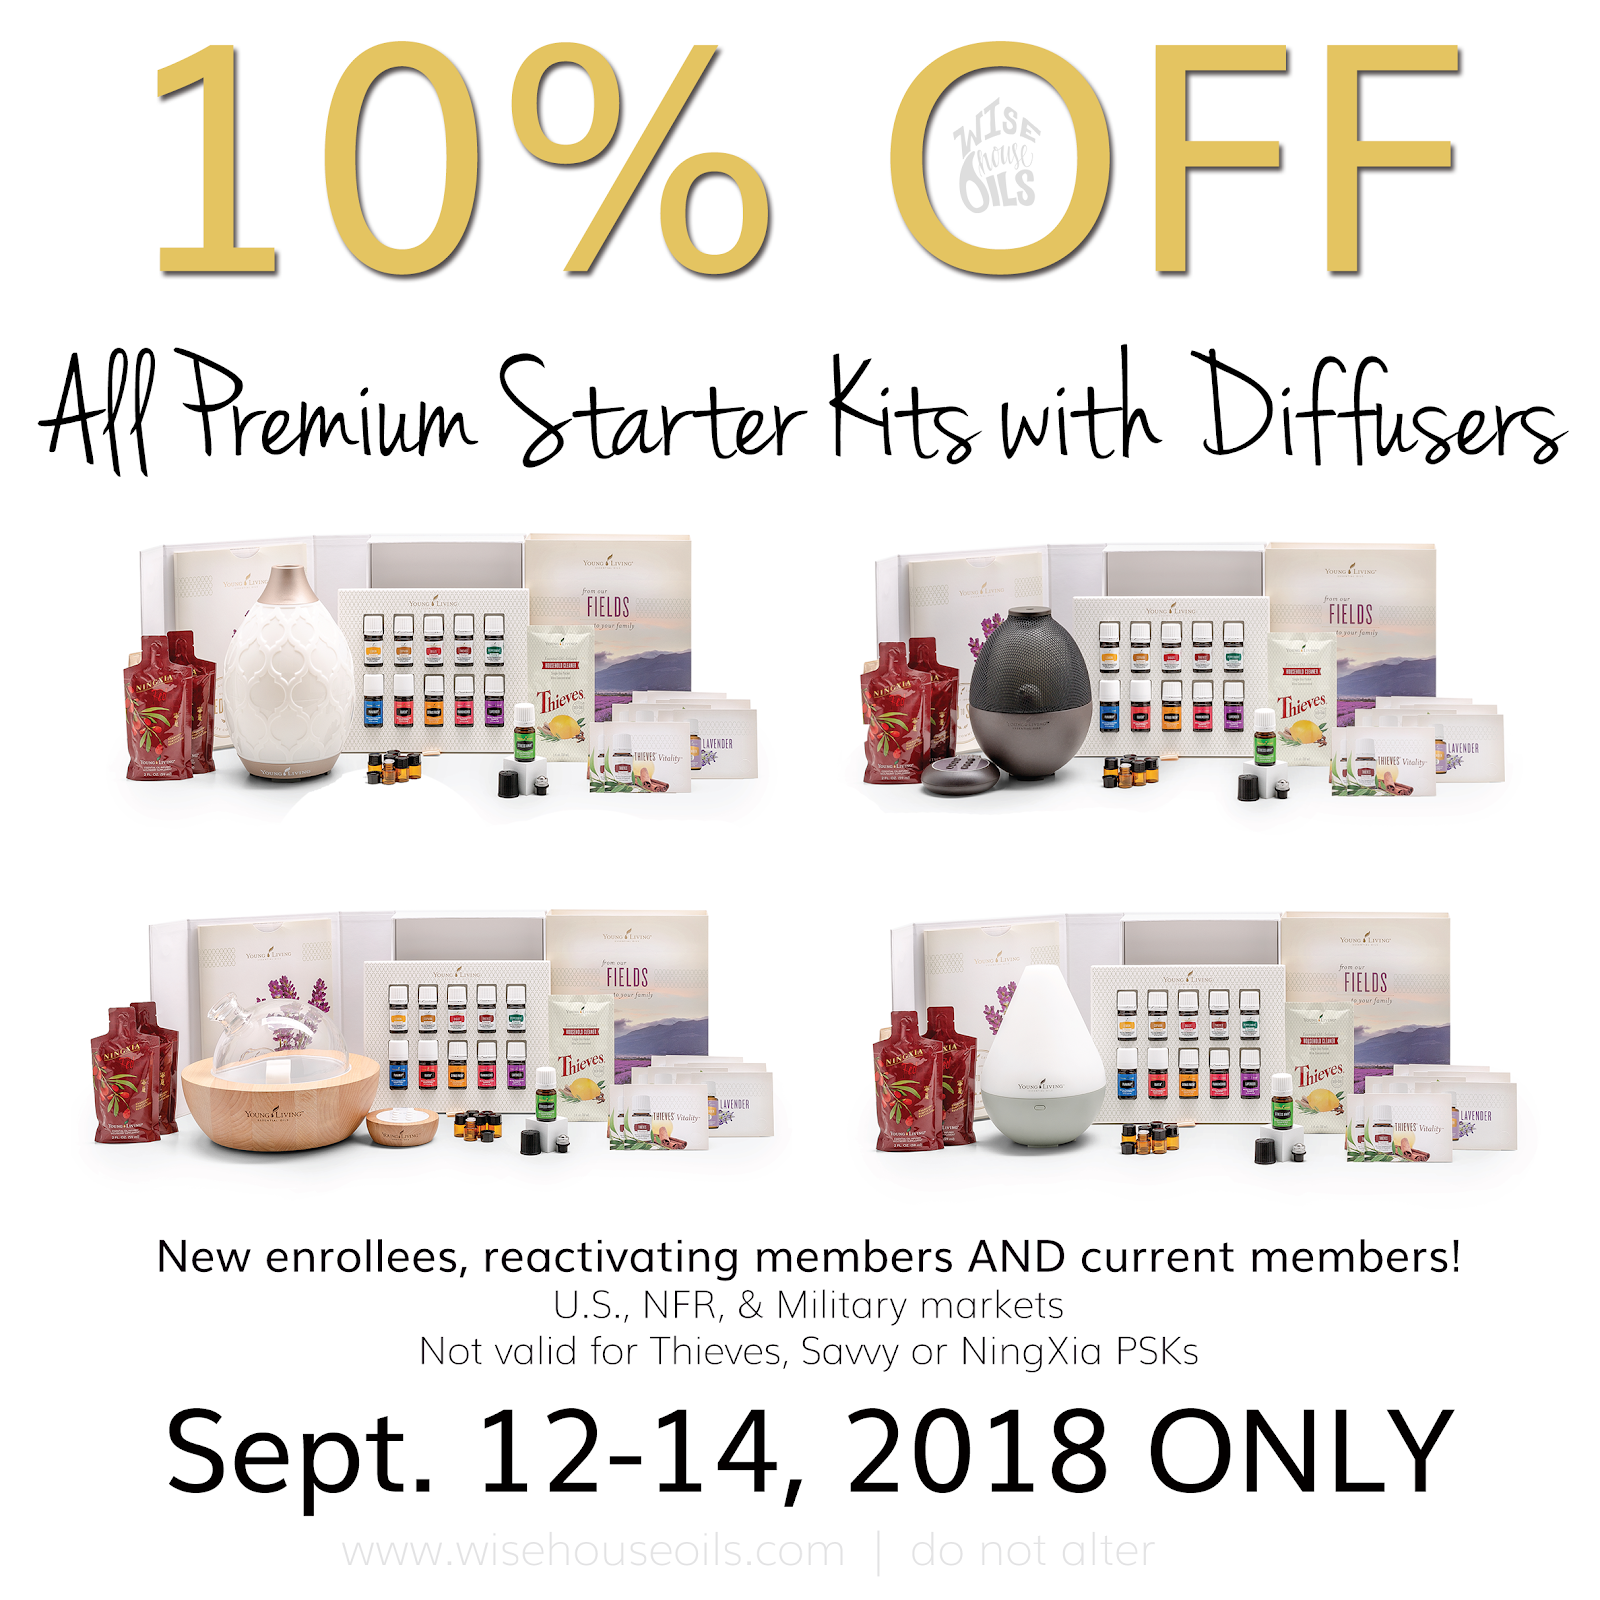 [10%25+off+PSK+September+2018+yellow%5B3%5D]